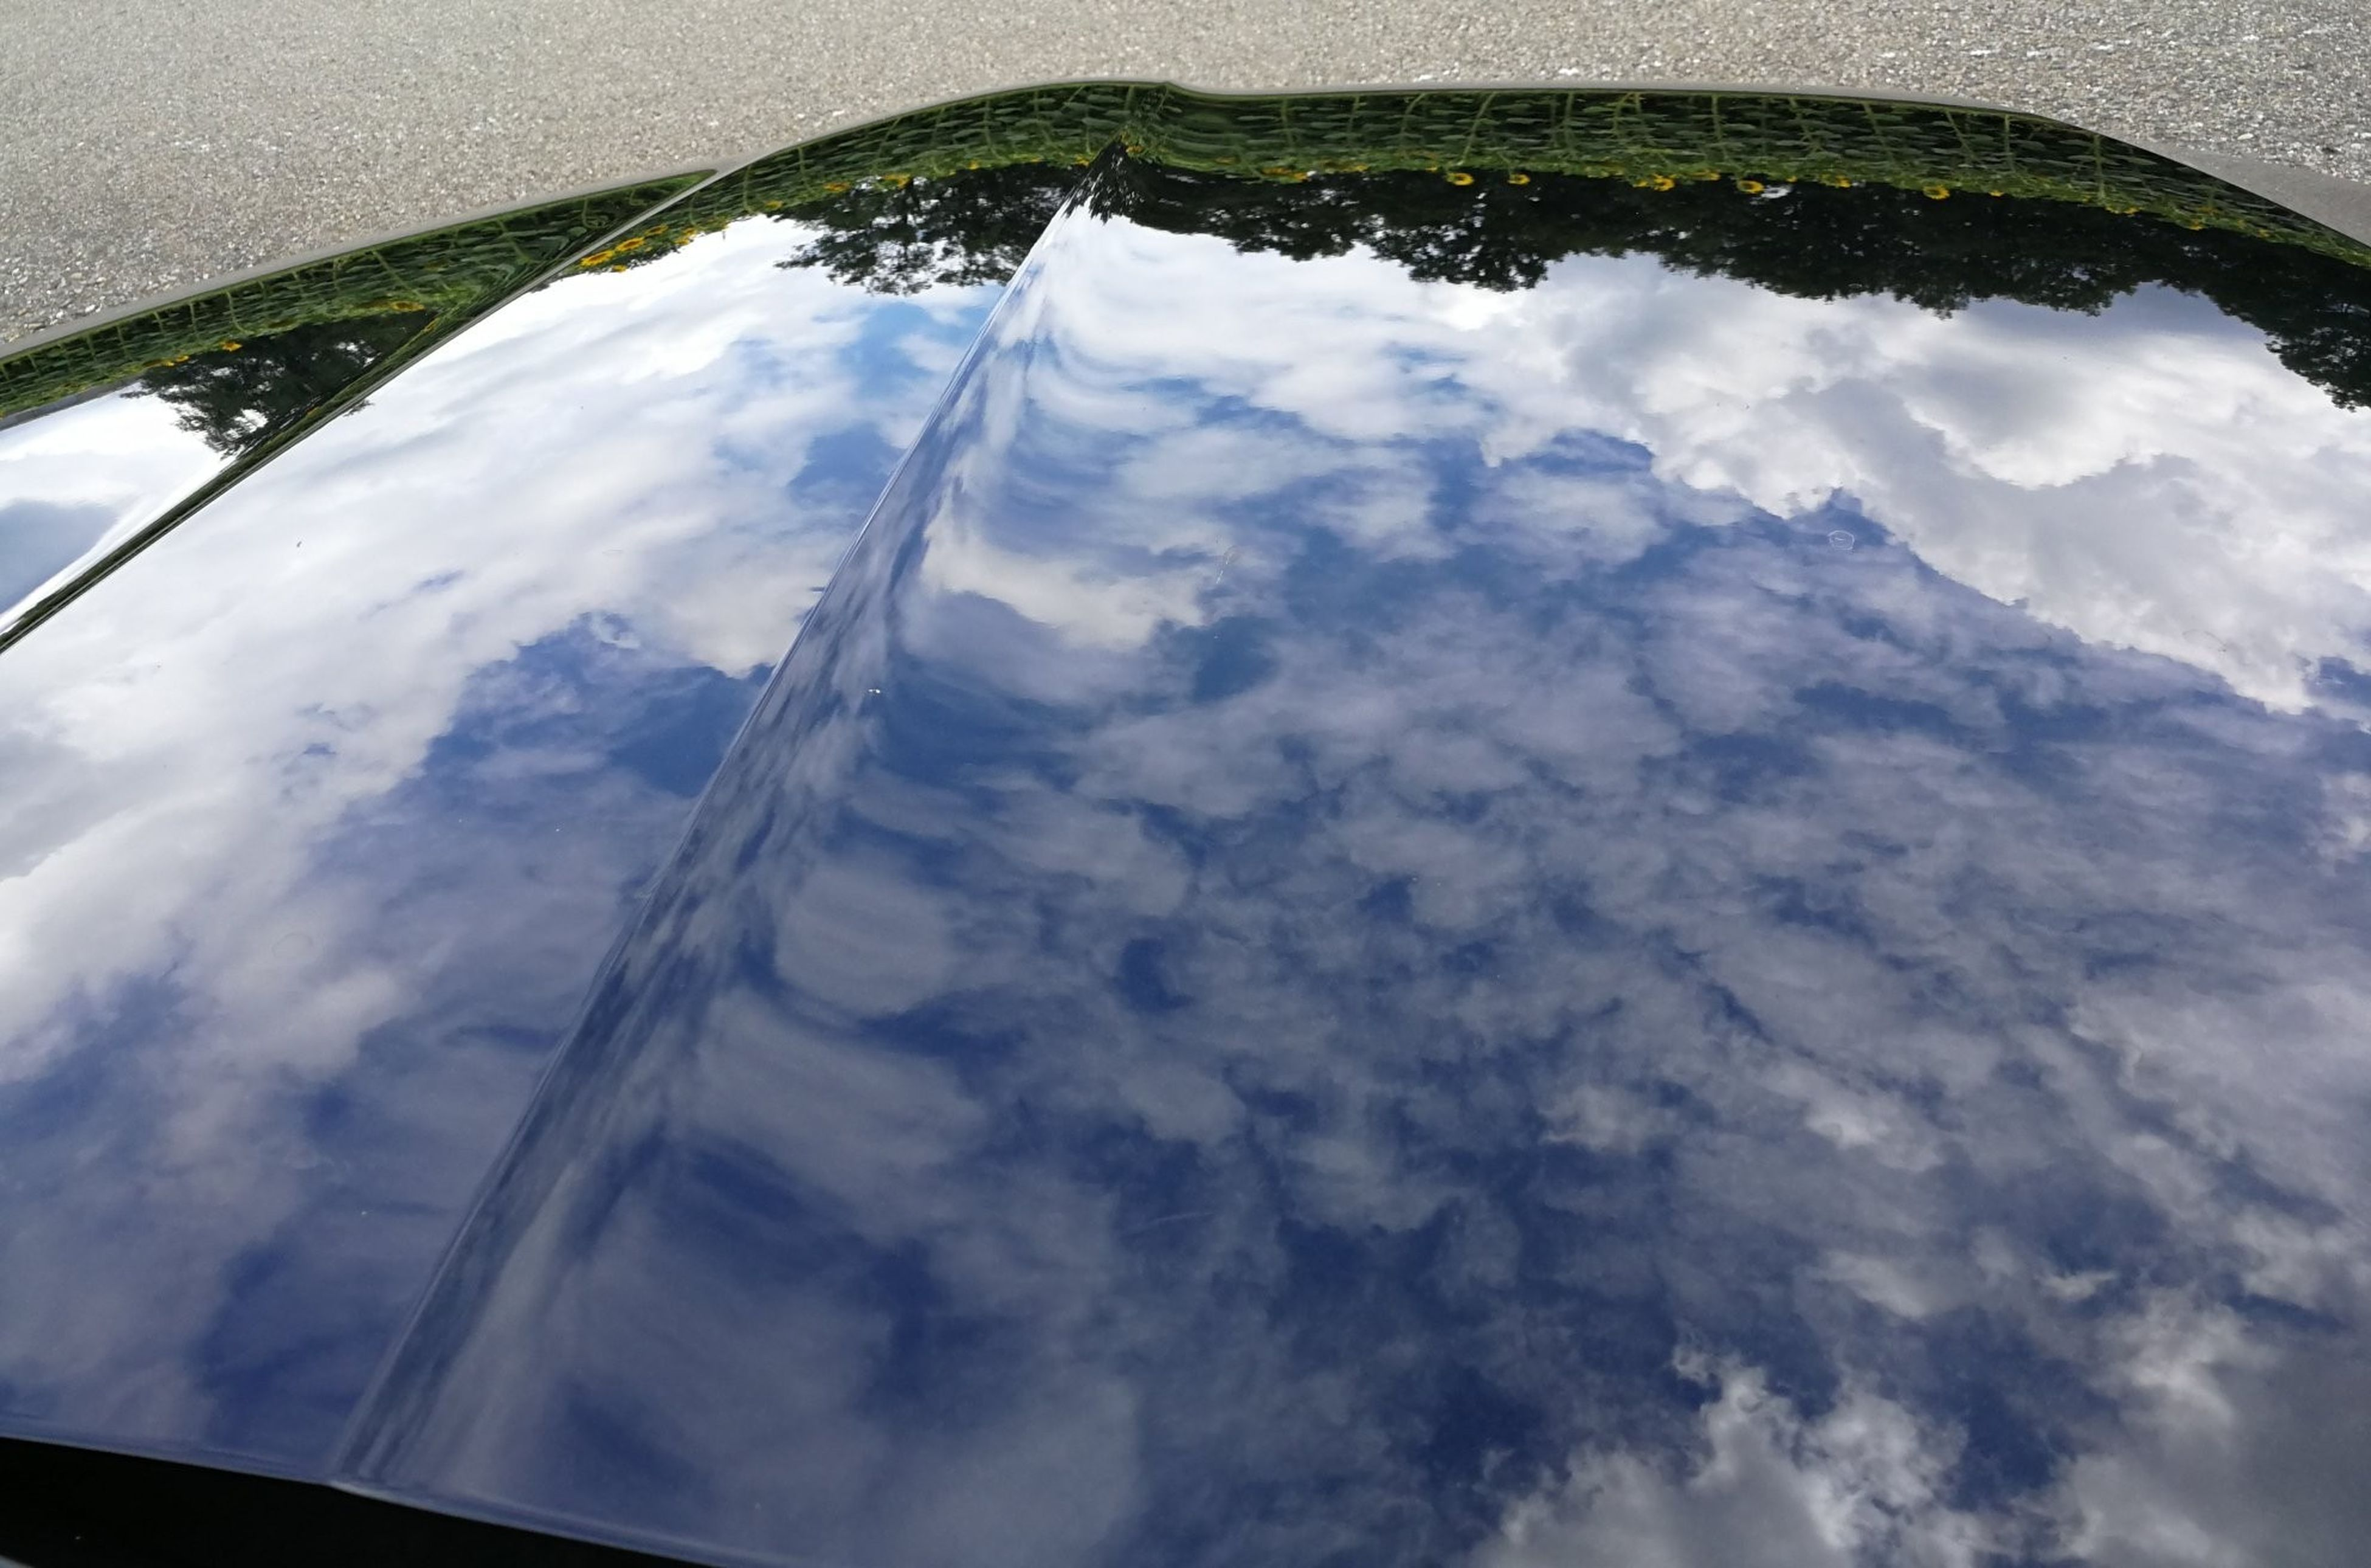 cloud - sky, sky, nature, day, no people, beauty in nature, outdoors, water, fish-eye lens